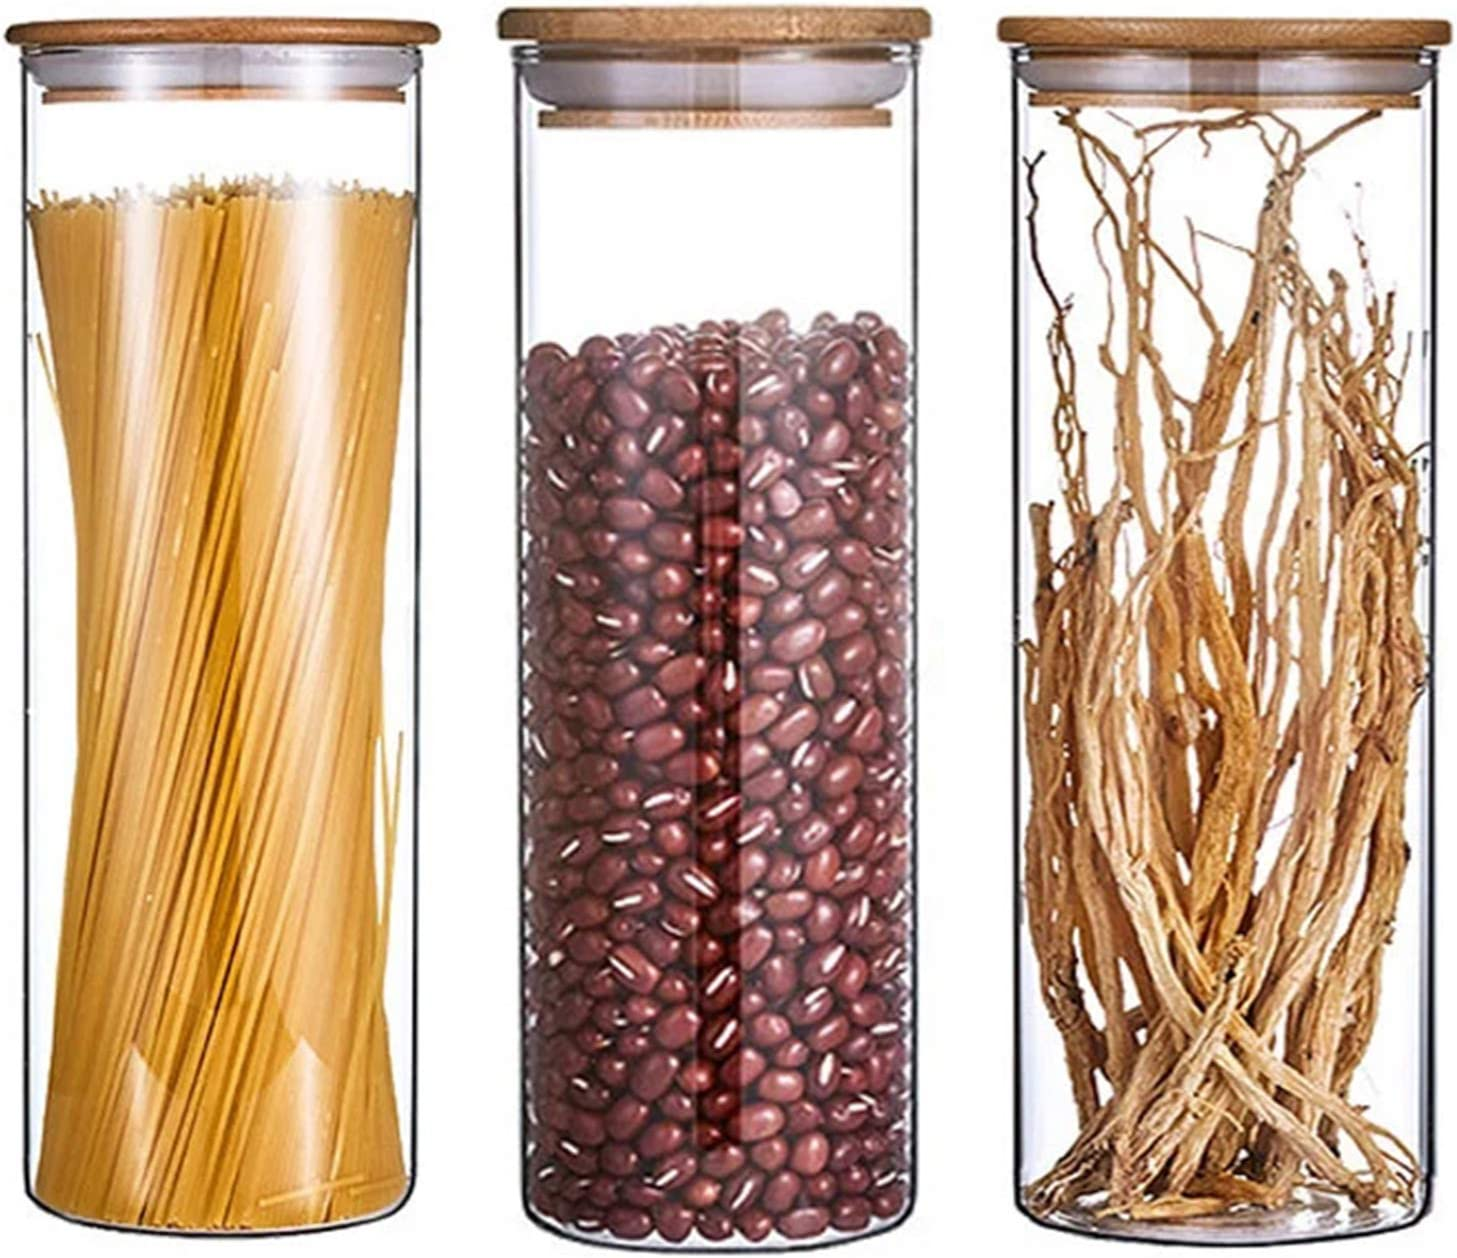 Glass Food Storage Jars Containers with Airtight Bamboo Lids,32.5 OZ (950 ML) Kitchen Glass Canisters Set of 3